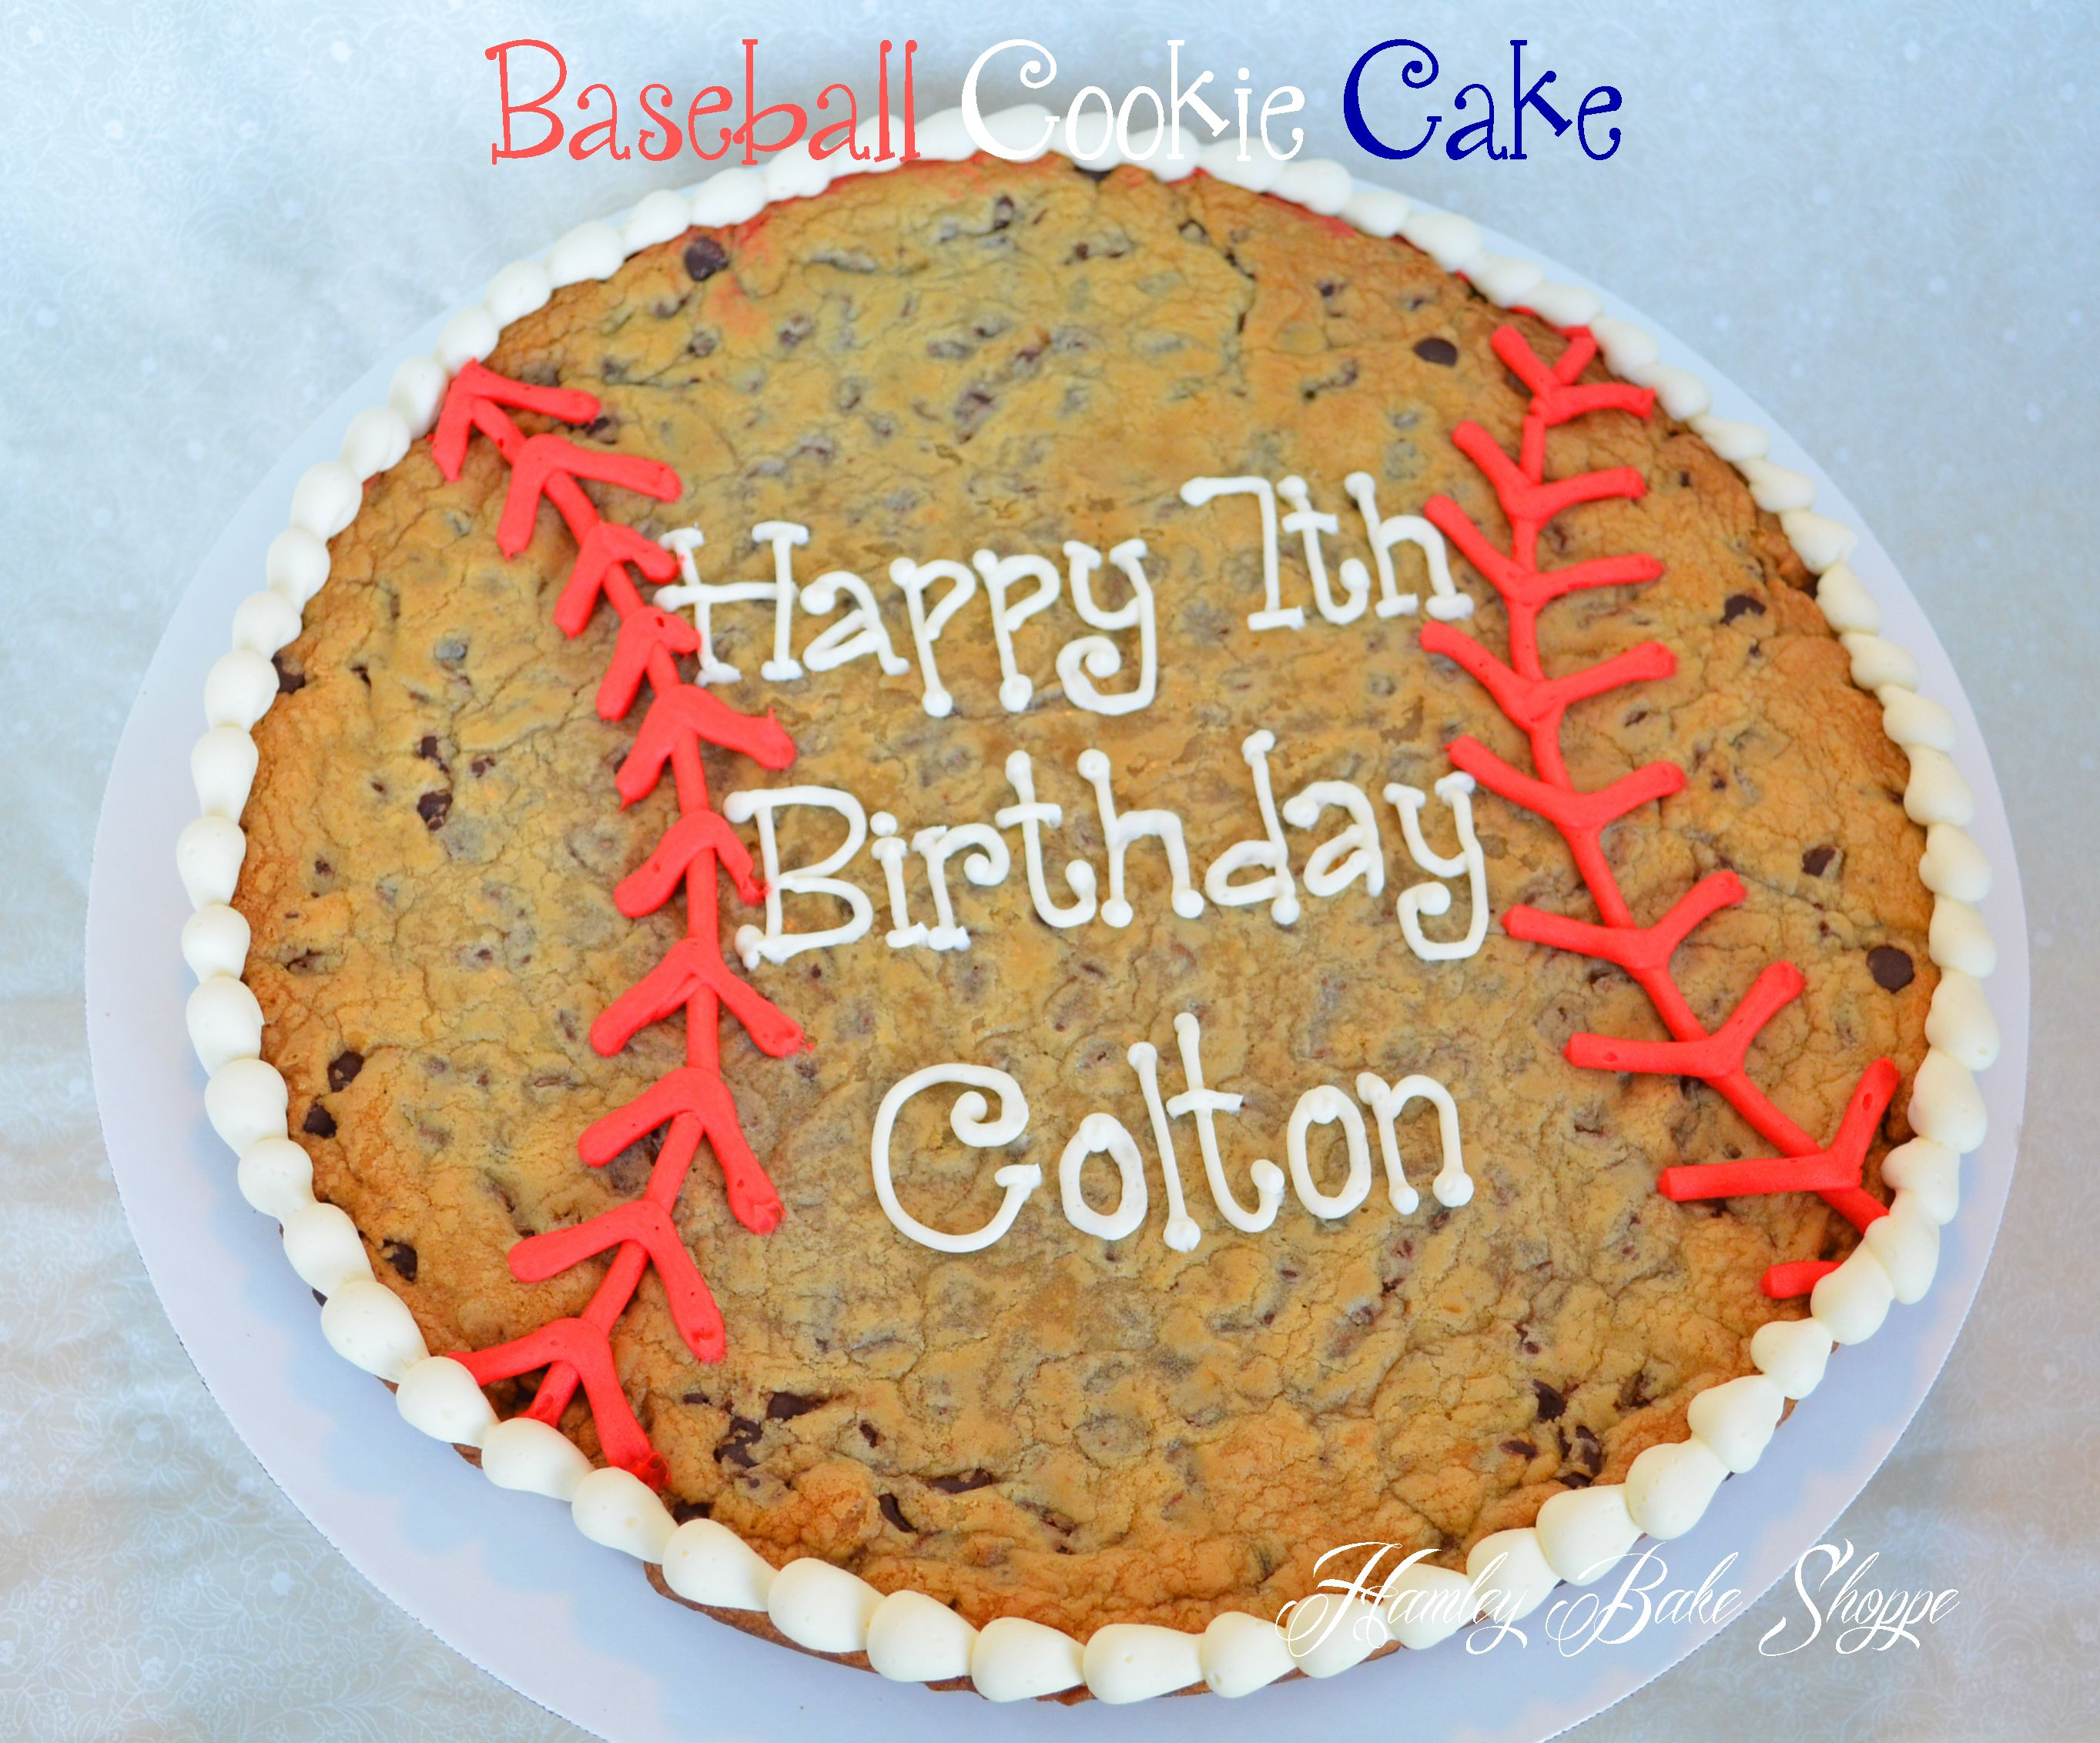 Baseball Cookie Cake Www Hamleybakeshoppe Com Baseball Birthday